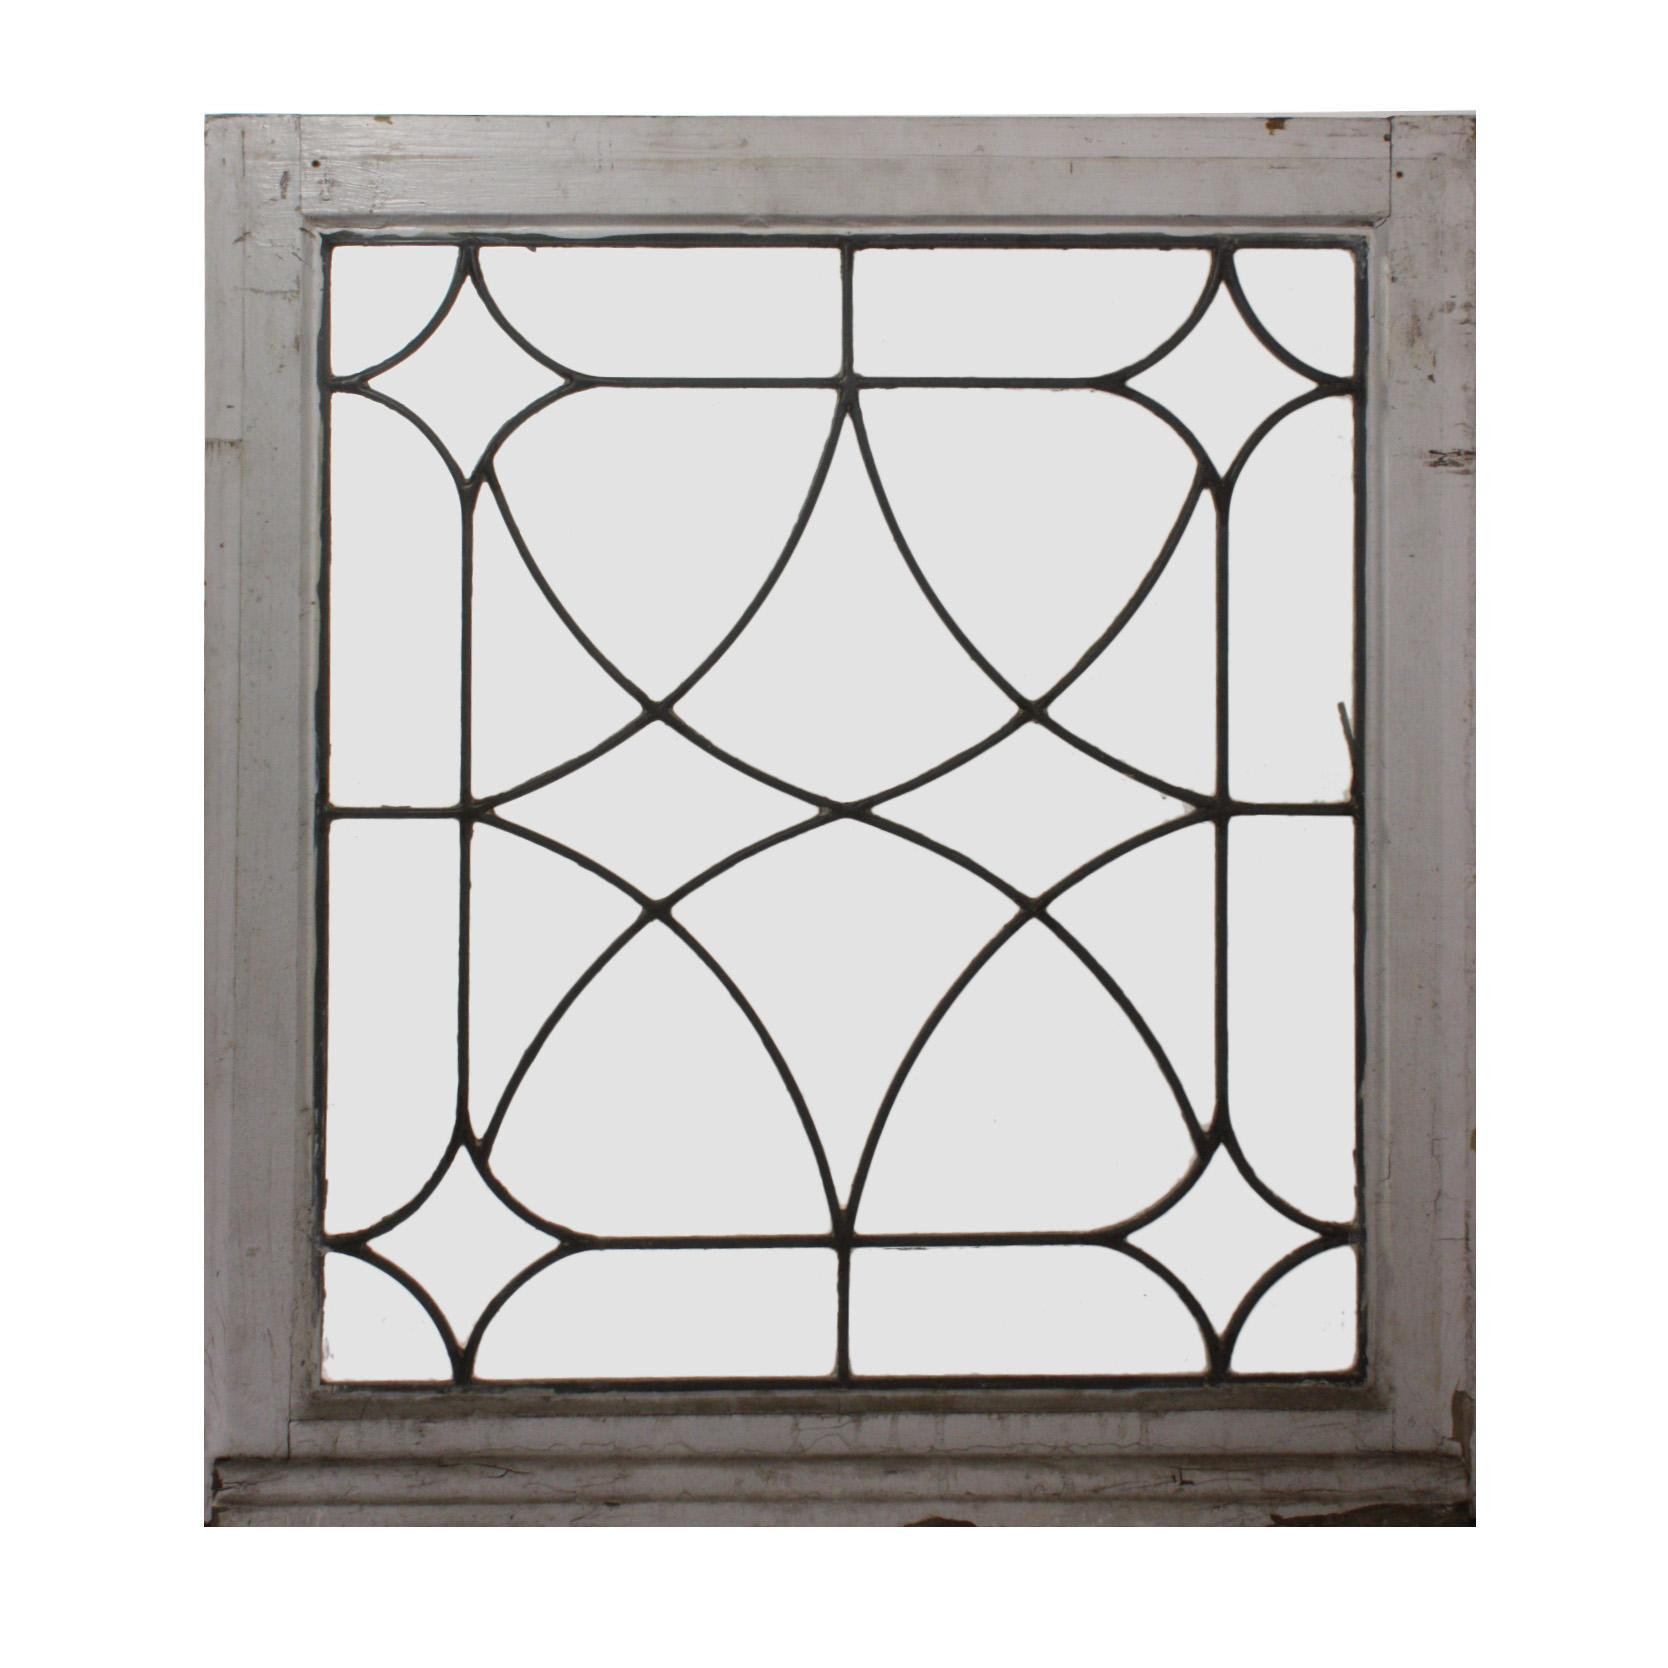 Antique american leaded glass window early 1900s from for 1900 stained glass window